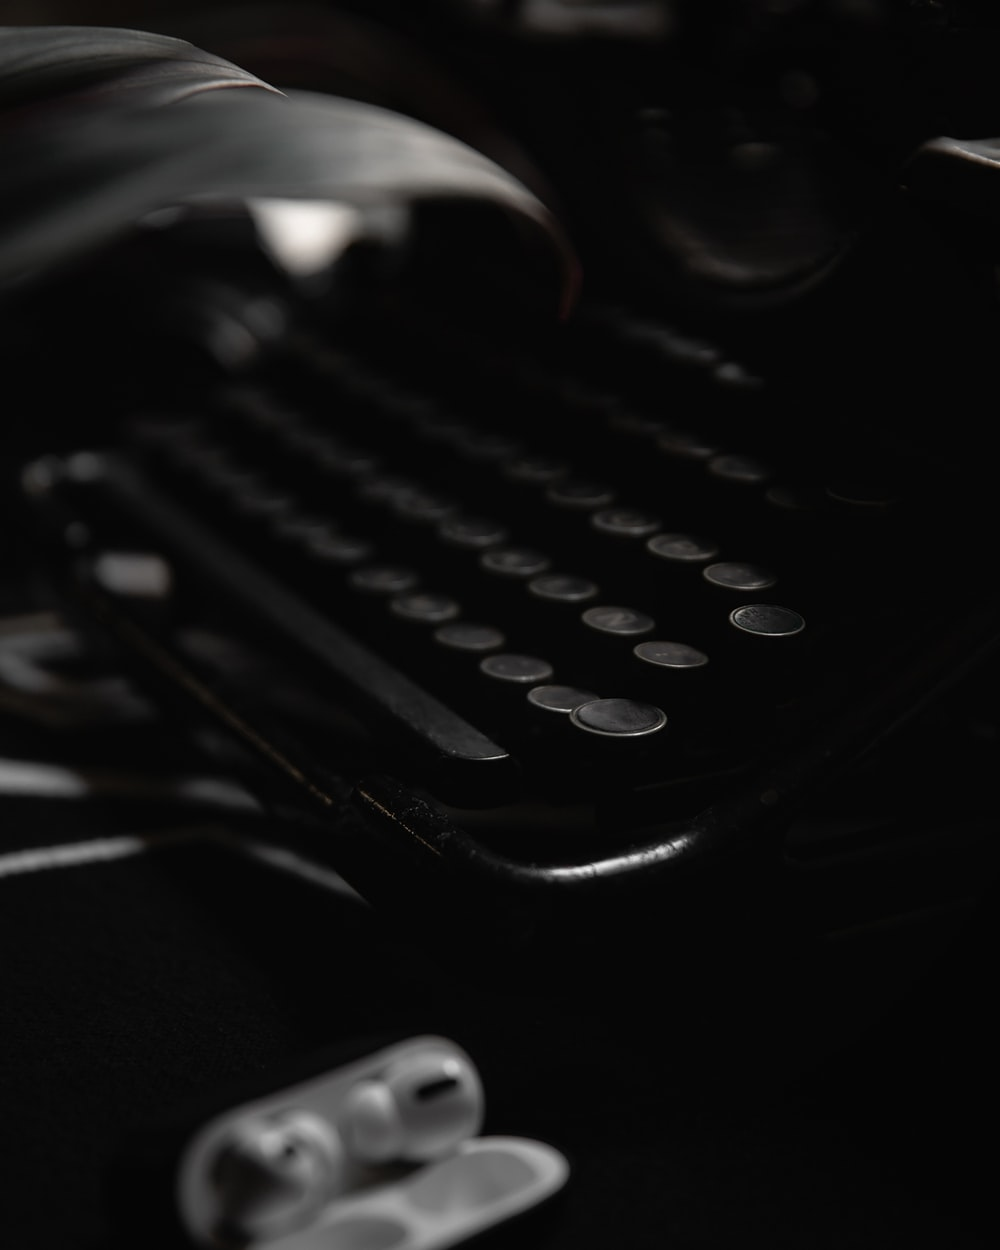 black and silver typewriter on black table